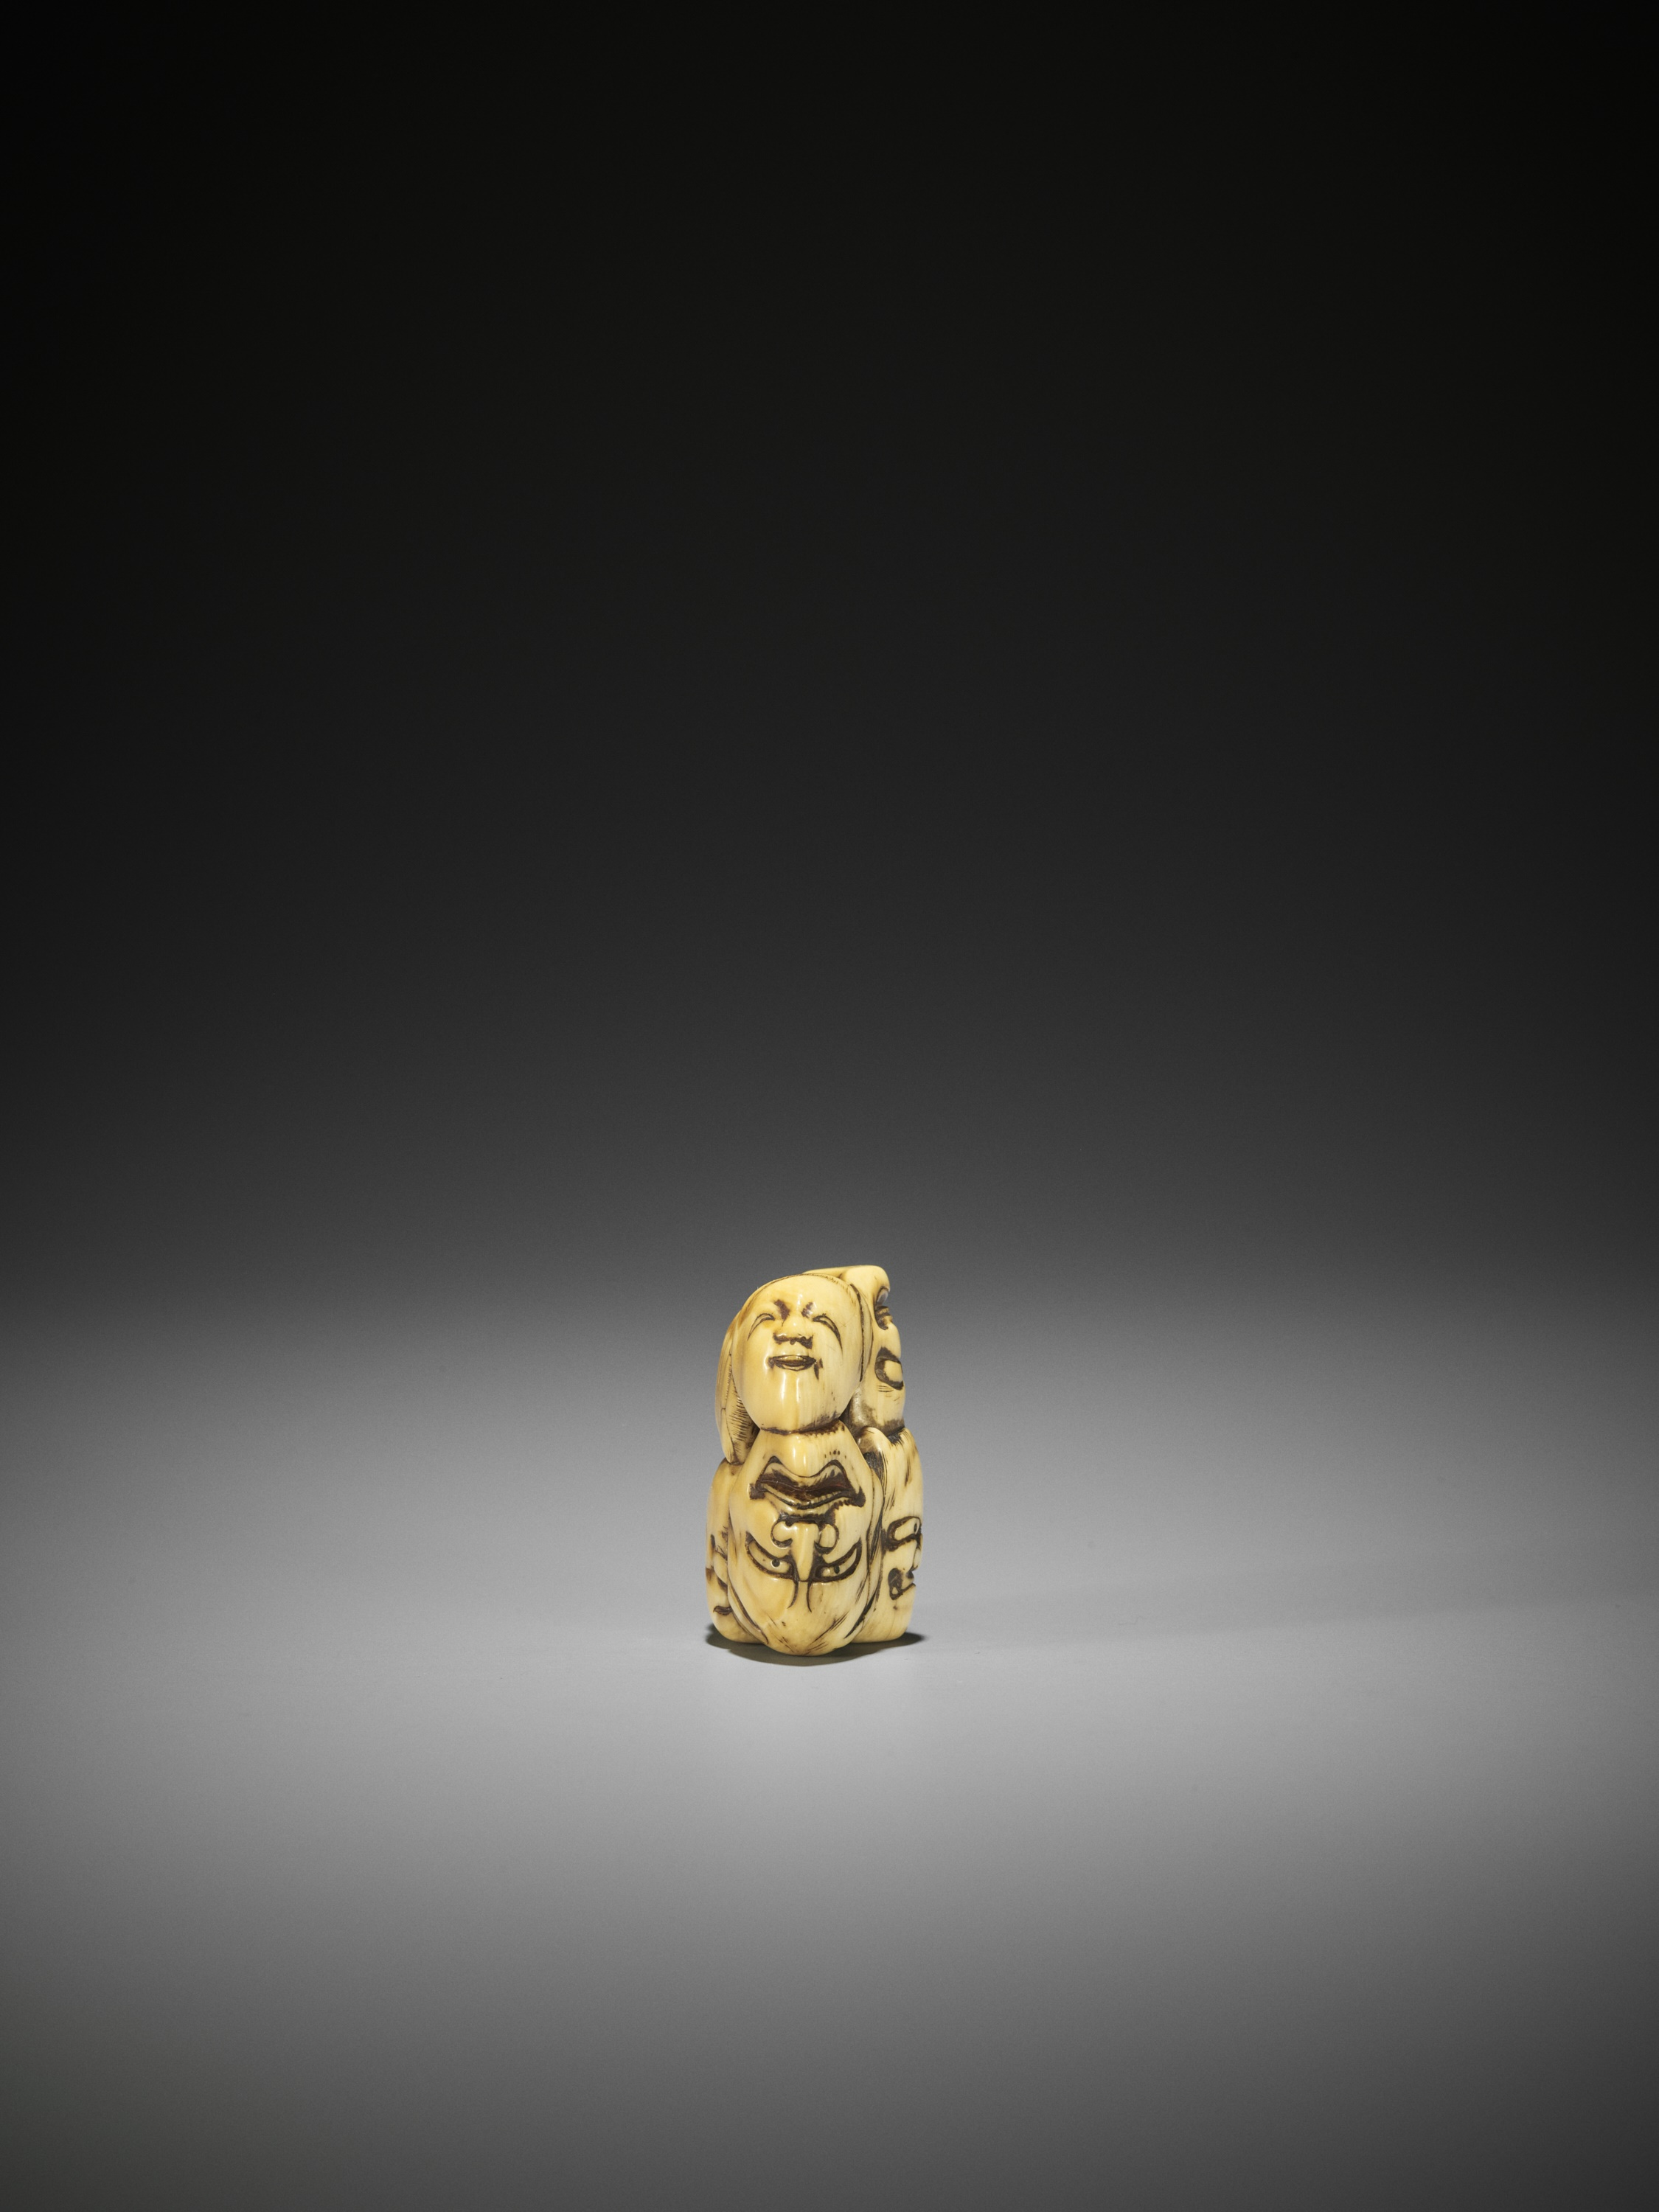 AN IVORY NETSUKE OF A GROUP OF SEVEN MASKS - Image 6 of 8